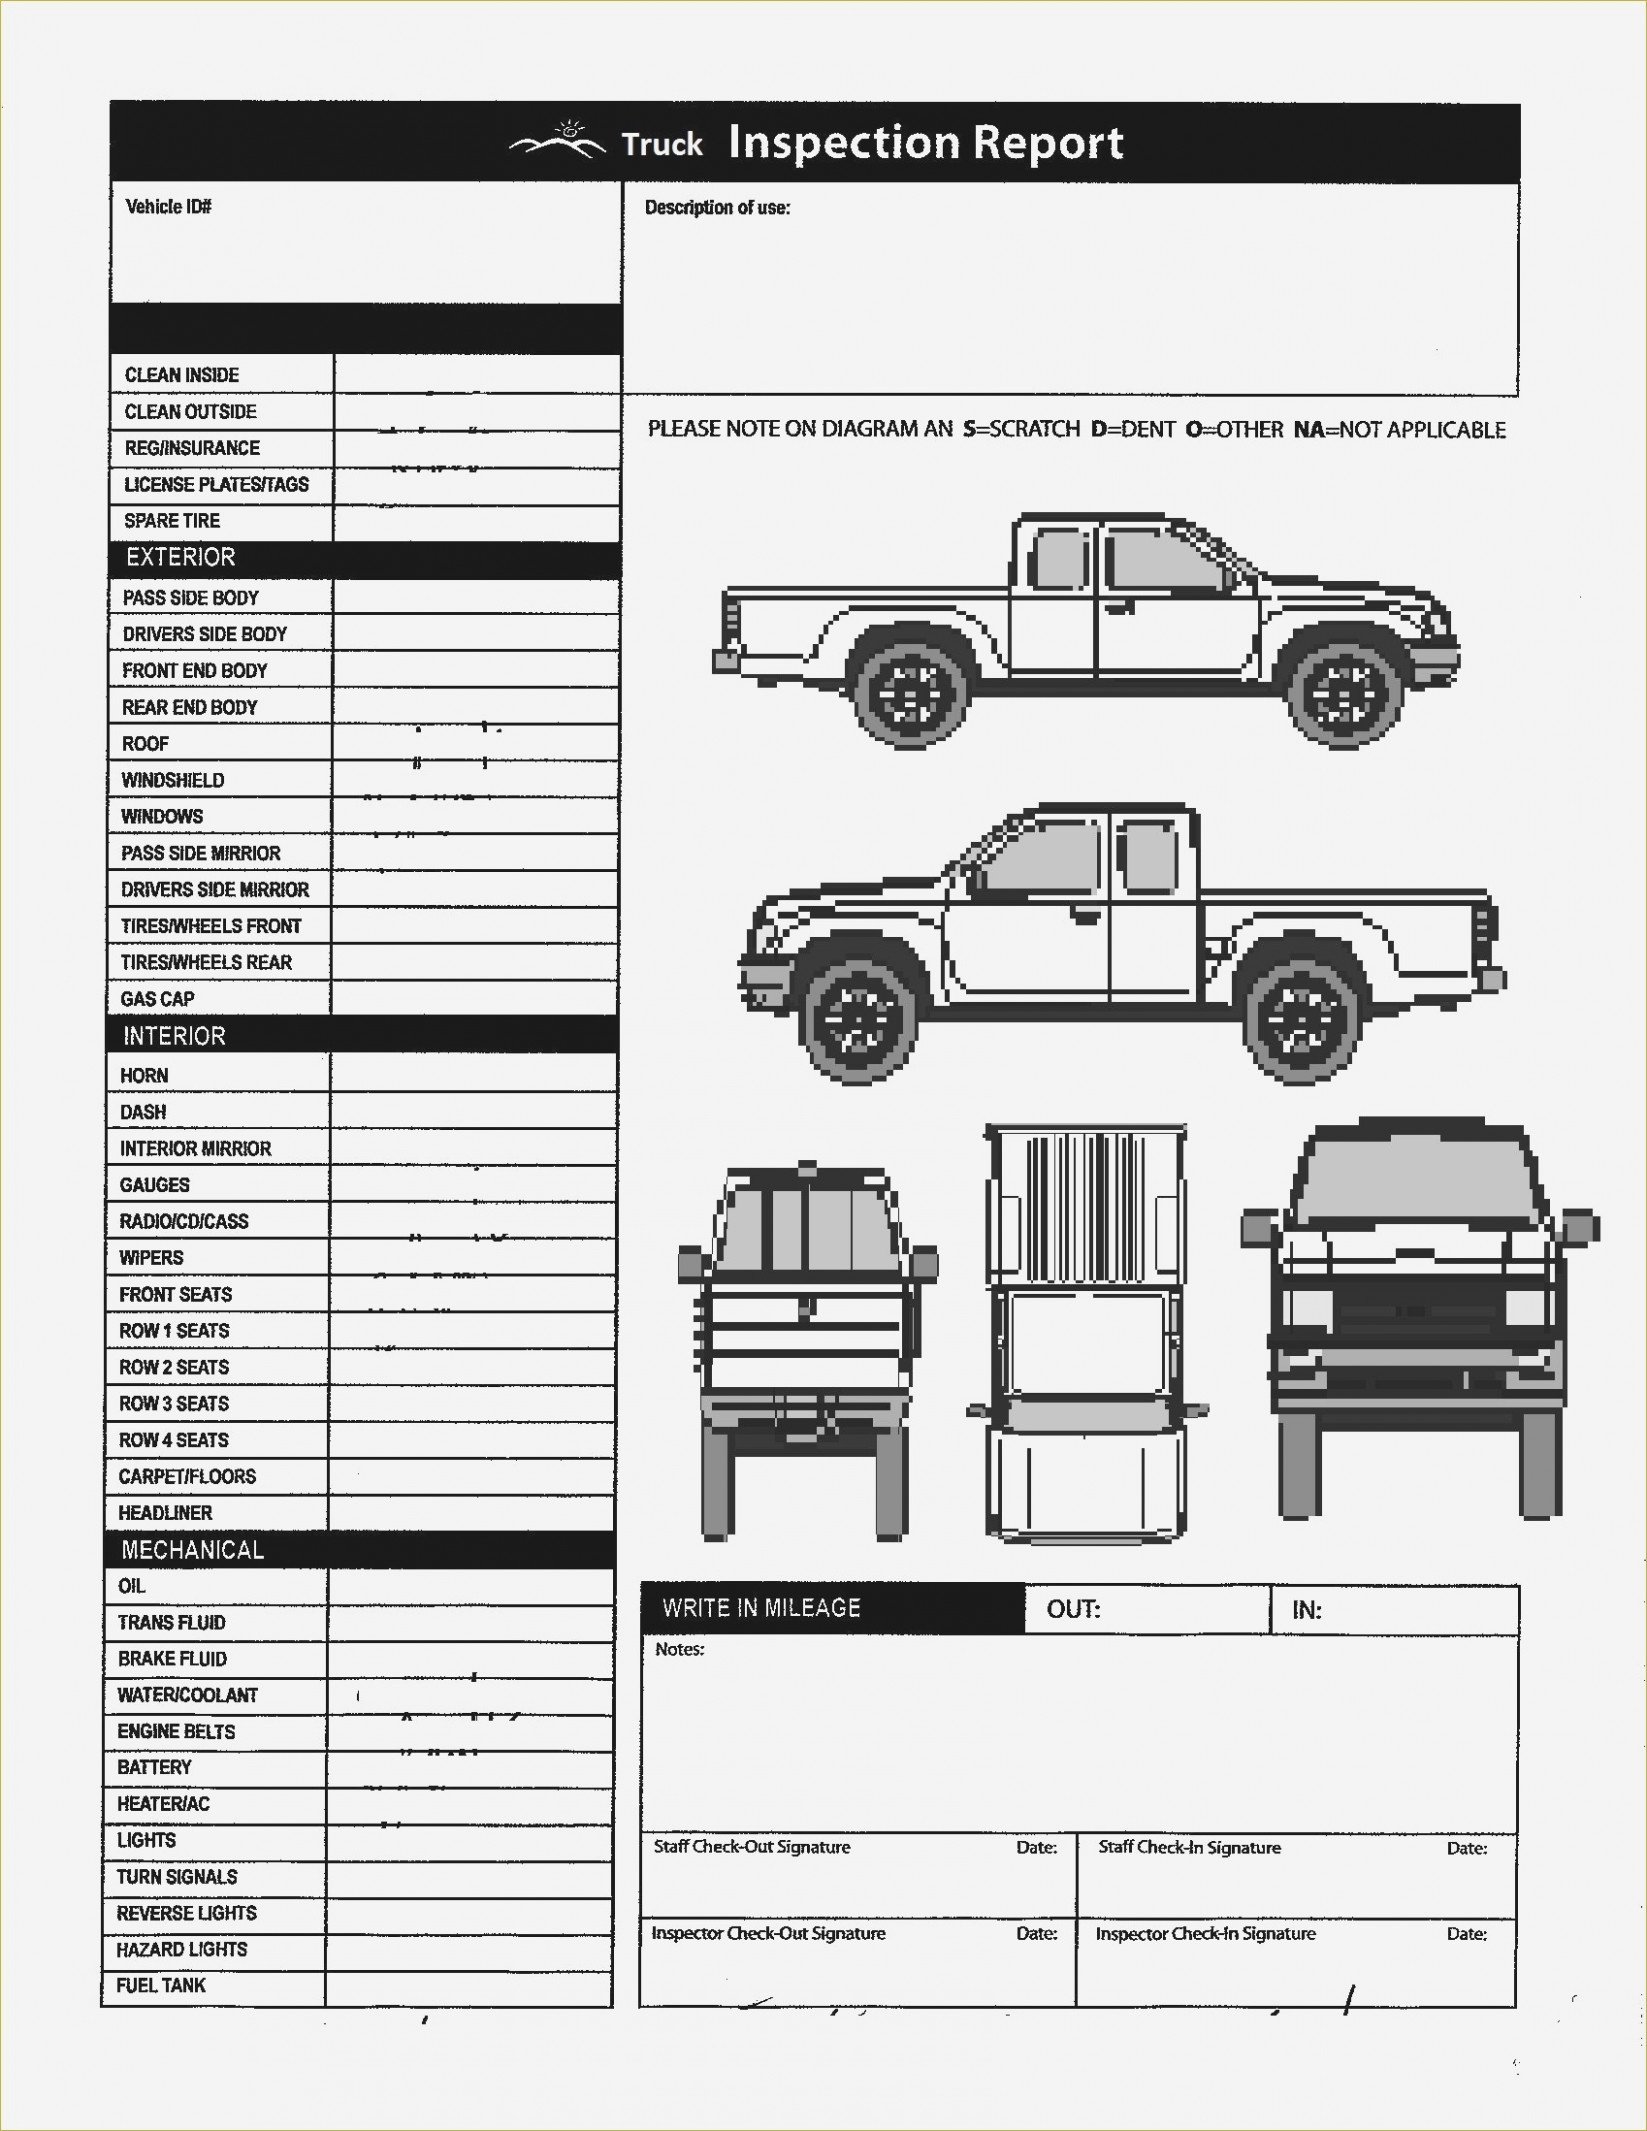 Free Printable Vehicle Inspection Form Download Free Used Car Report - Free Printable Vehicle Inspection Form